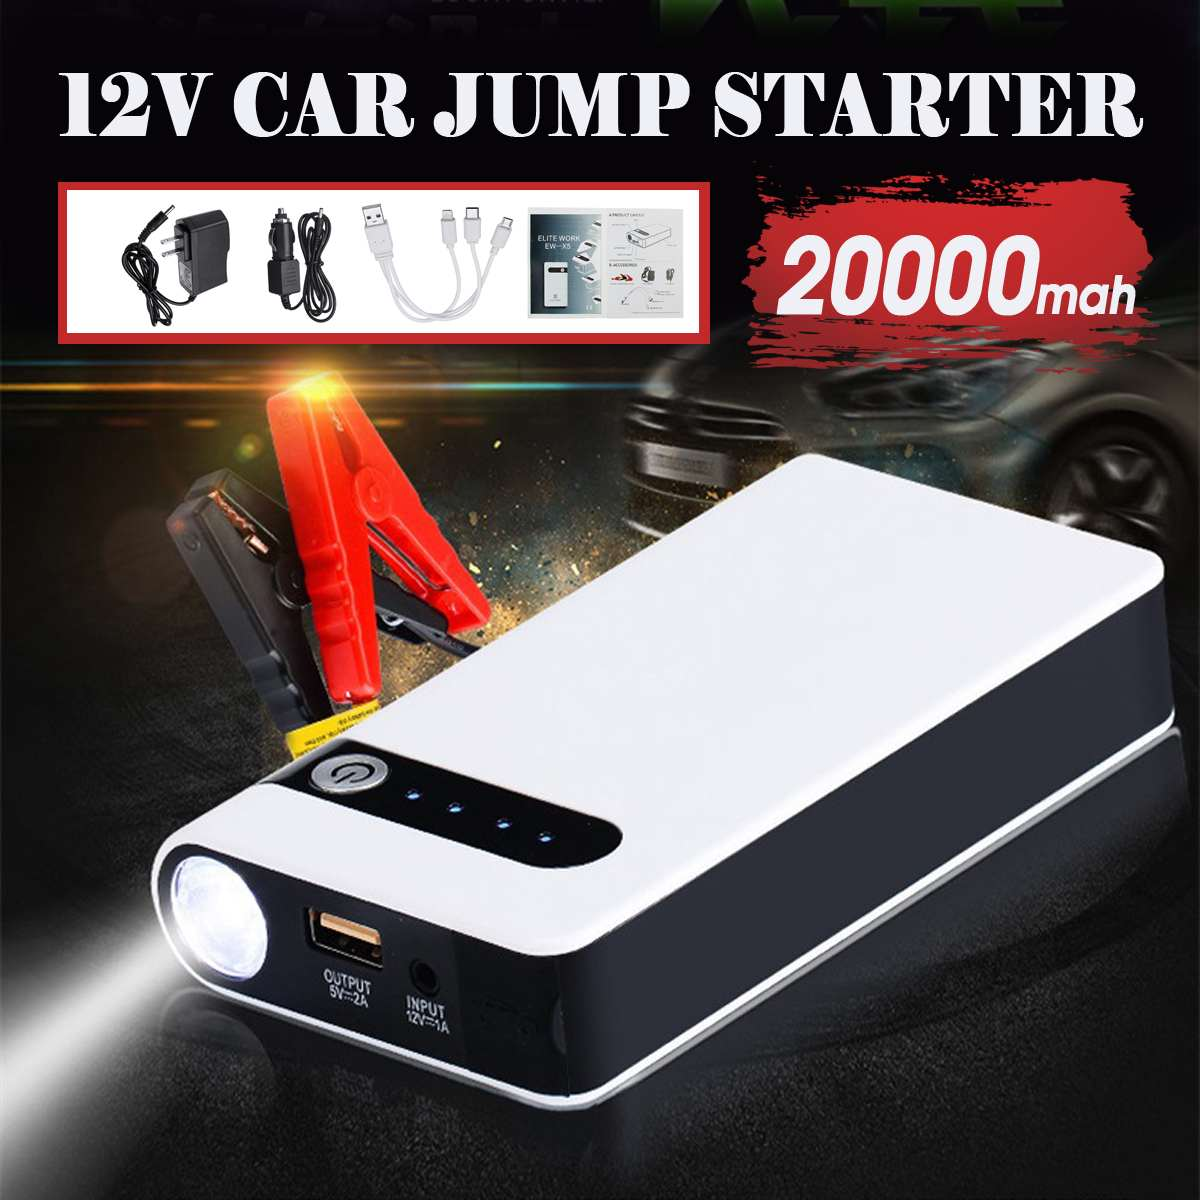 12V 20000mAh Car Jump Starter Booster USB Jumper Box Power Bank Battery Charger Emergency Starting Device|Jump Starter| |  - title=